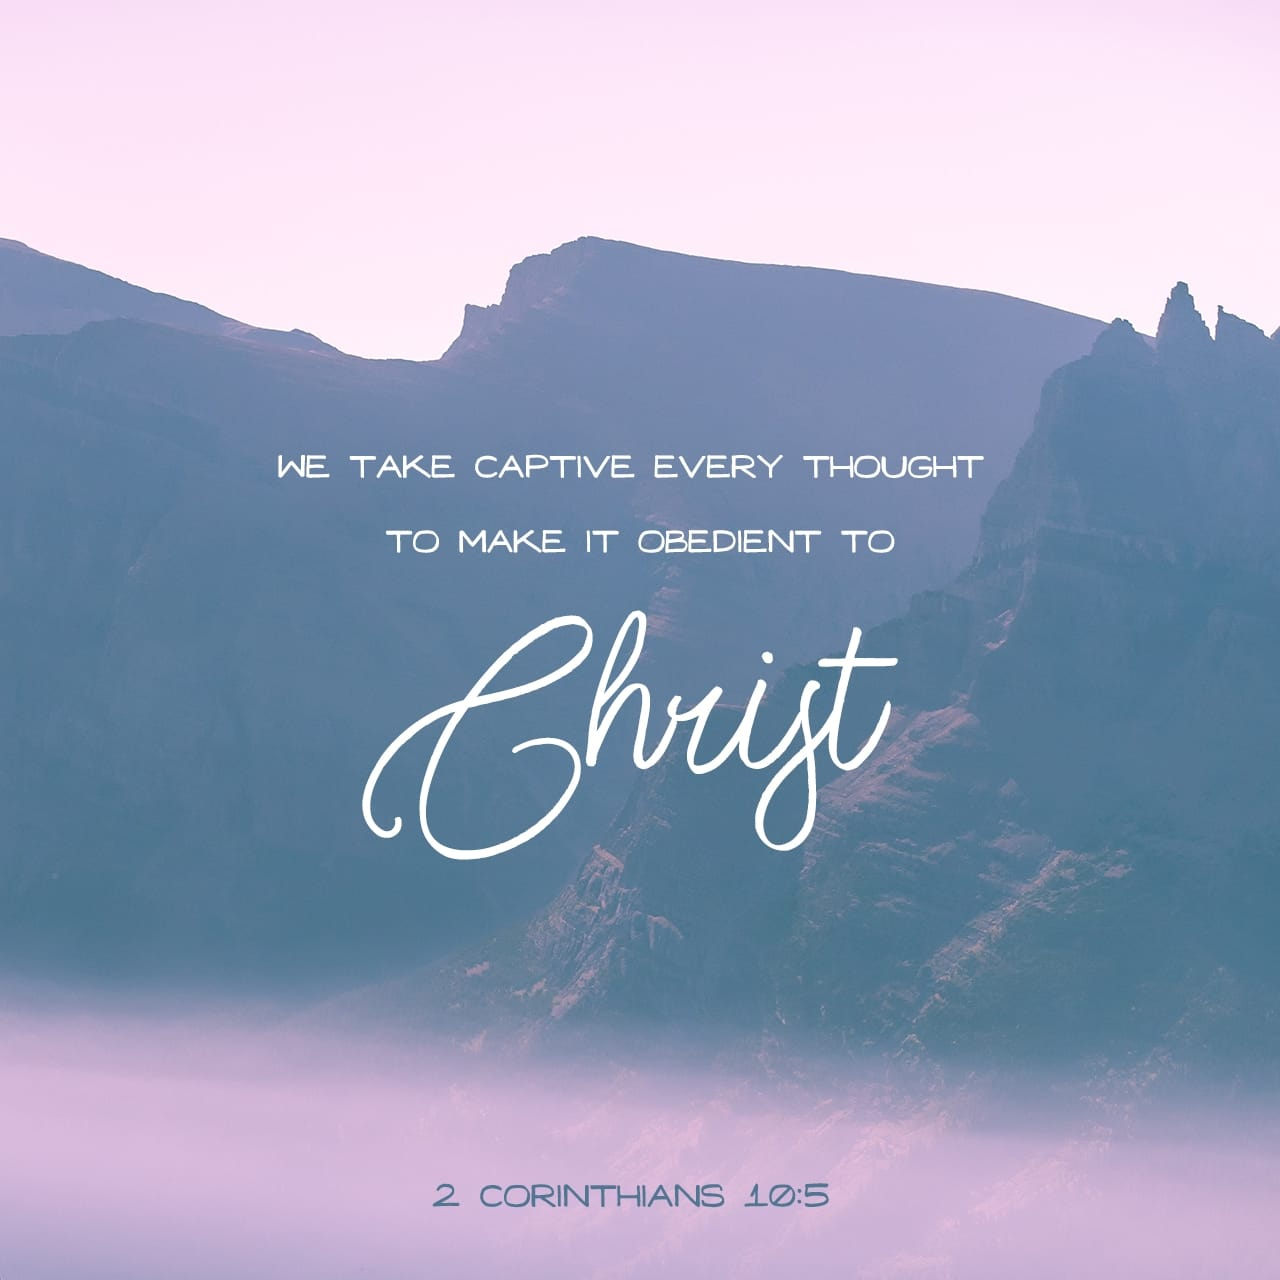 2 Corinthians 10:5 We demolish arguments and every pretension that sets itself up against the knowledge of God, and we take captive every thought to make it obedient to Christ. | New International Version (NIV)